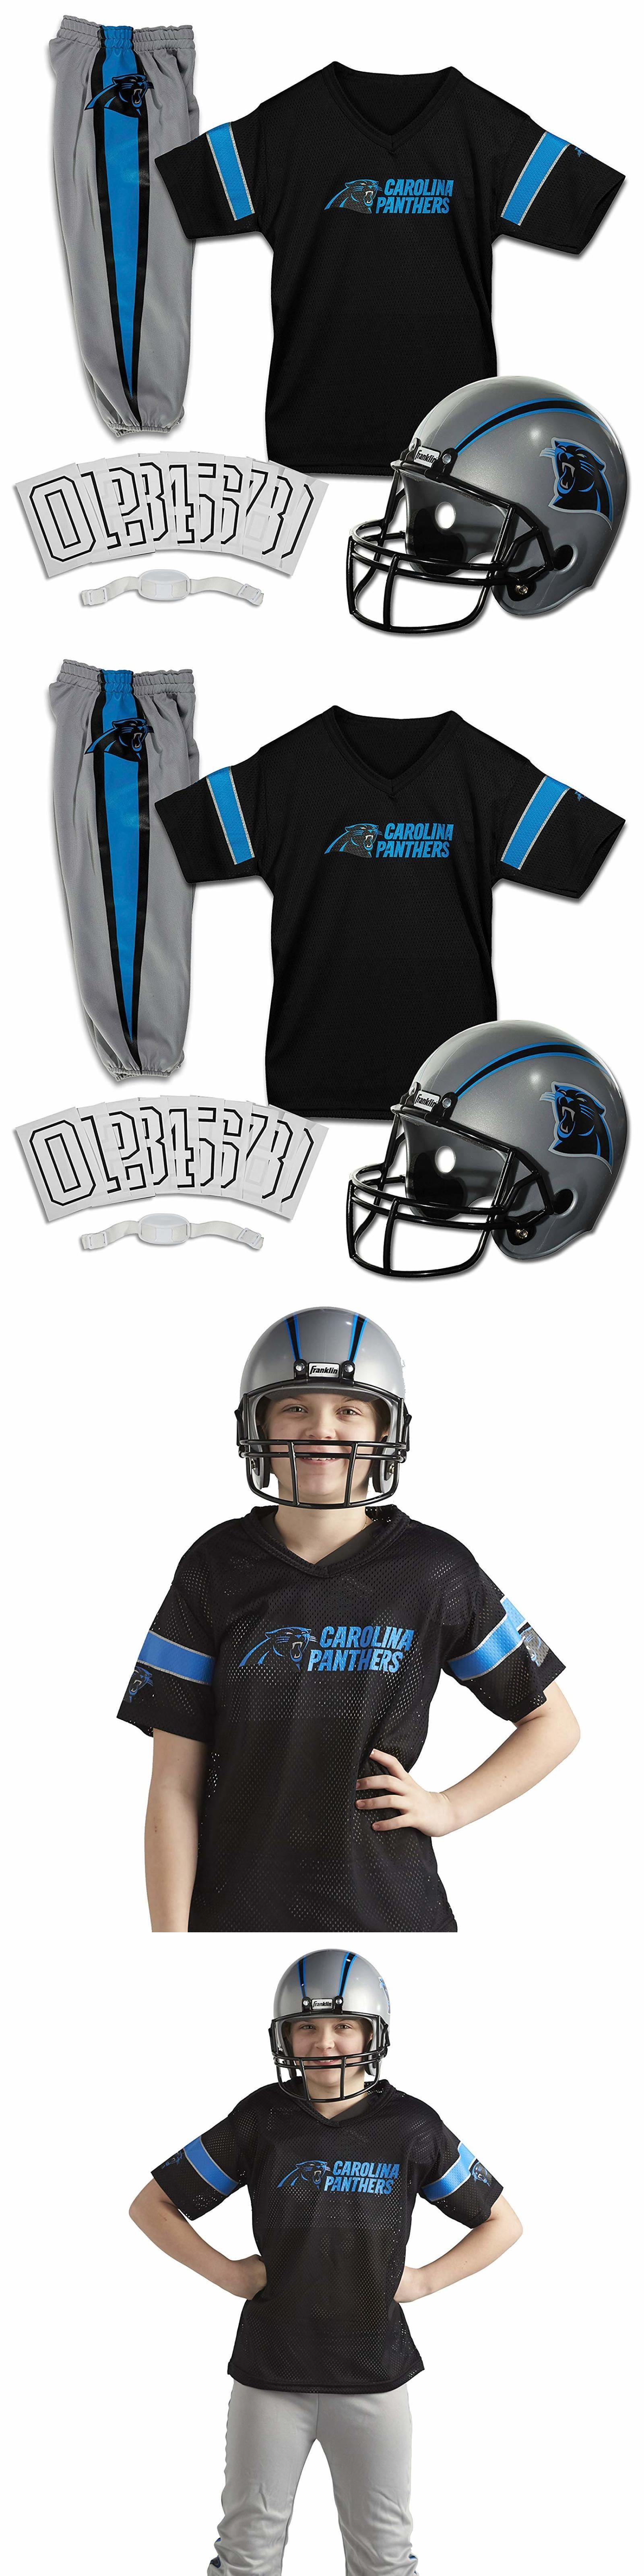 Dress-Up Costumes 19172  Carolina Panthers Uniform Set Youth Nfl Football  Jersey Helmet Kid Medium Size -  BUY IT NOW ONLY   28.99 on  eBay  costumes  ... 3bd8f8540